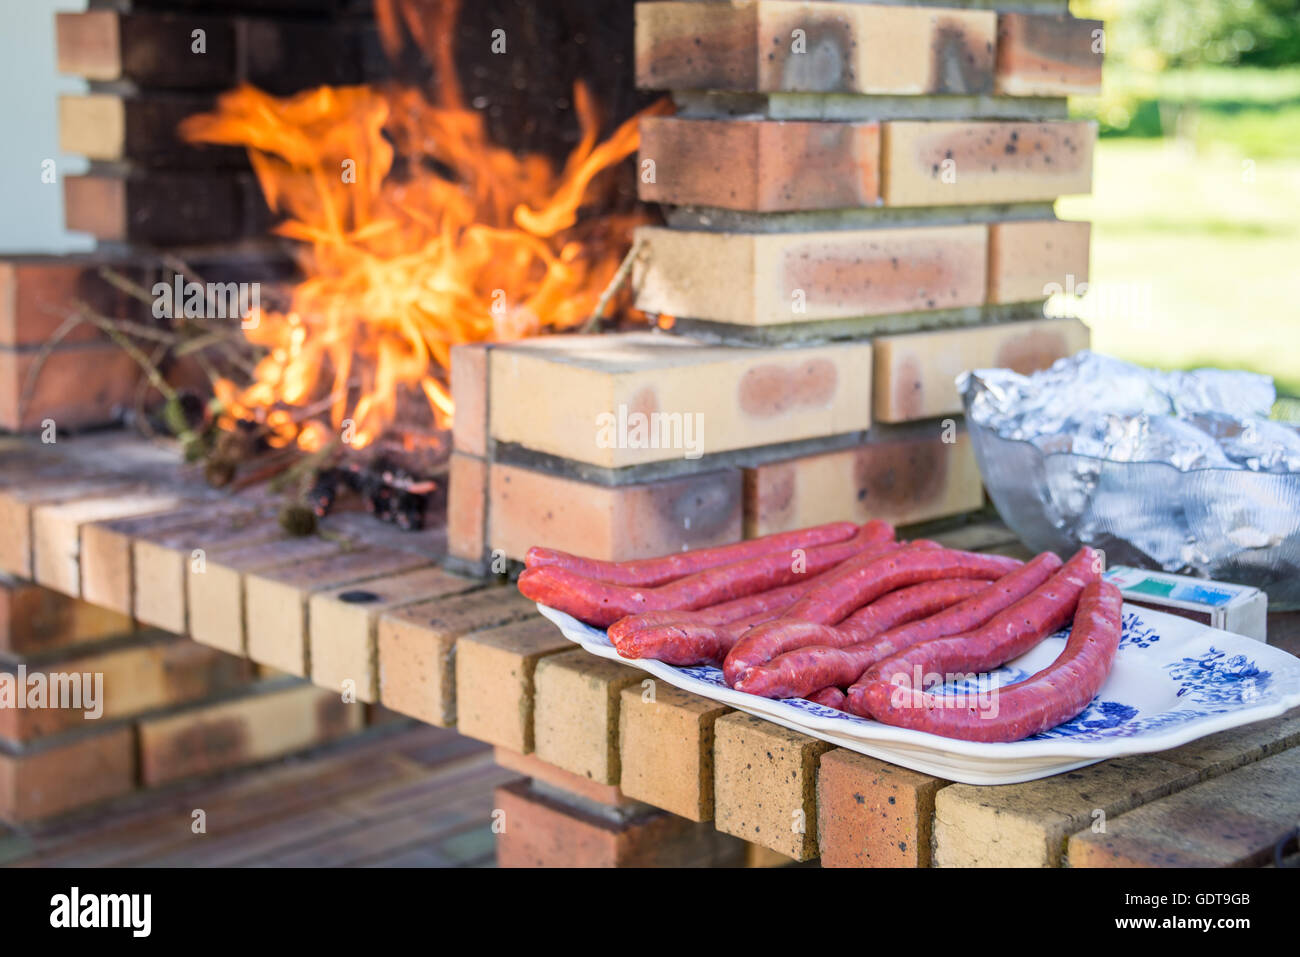 Merguez sausages on a plate, masonry barbecue with fire and flames - Stock Image